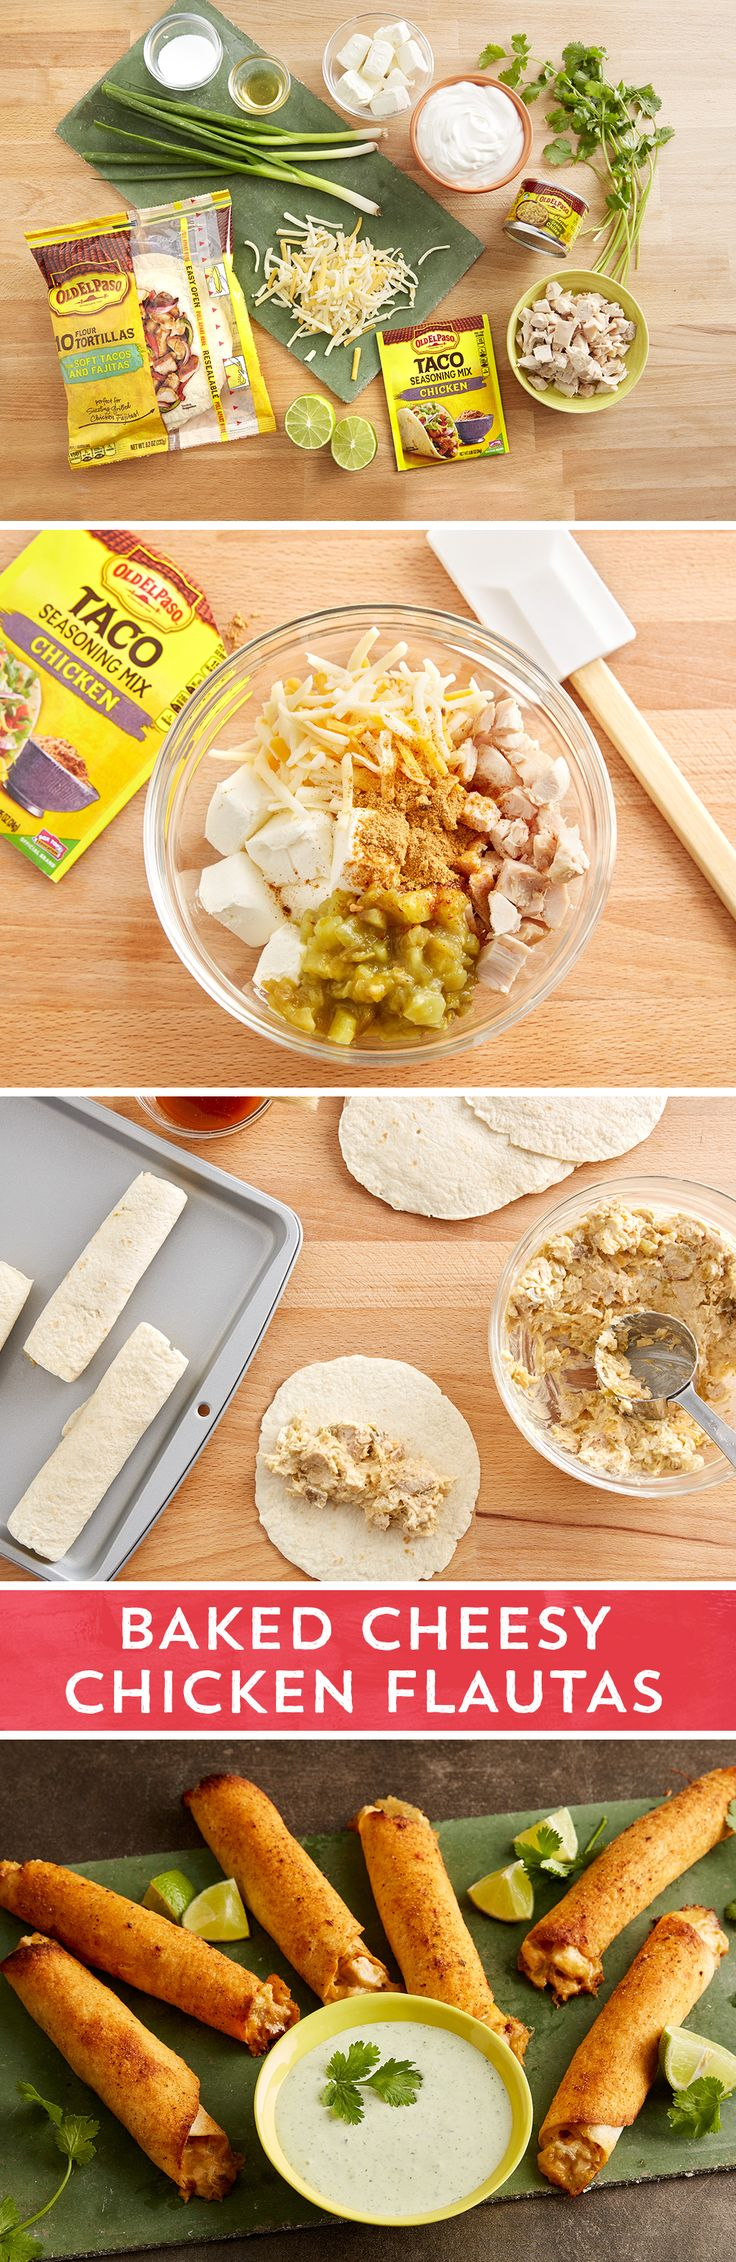 These baked flautas give you all the crispy, cheesy flavor of traditional flautas without the deep-fried hassle and mess. The one bowl filling comes together in a matter of minutes with chopped chicken, Old El Paso™ chicken seasoning, shredded Mexican cheese blend, softened cream cheese, and Old El Paso™ green chiles. A little oil and Old El Paso™ chicken seasoning on the outside give these flautas beautiful color and an extra kick of flavor. Serve with an easy homemade herbed sour cream…